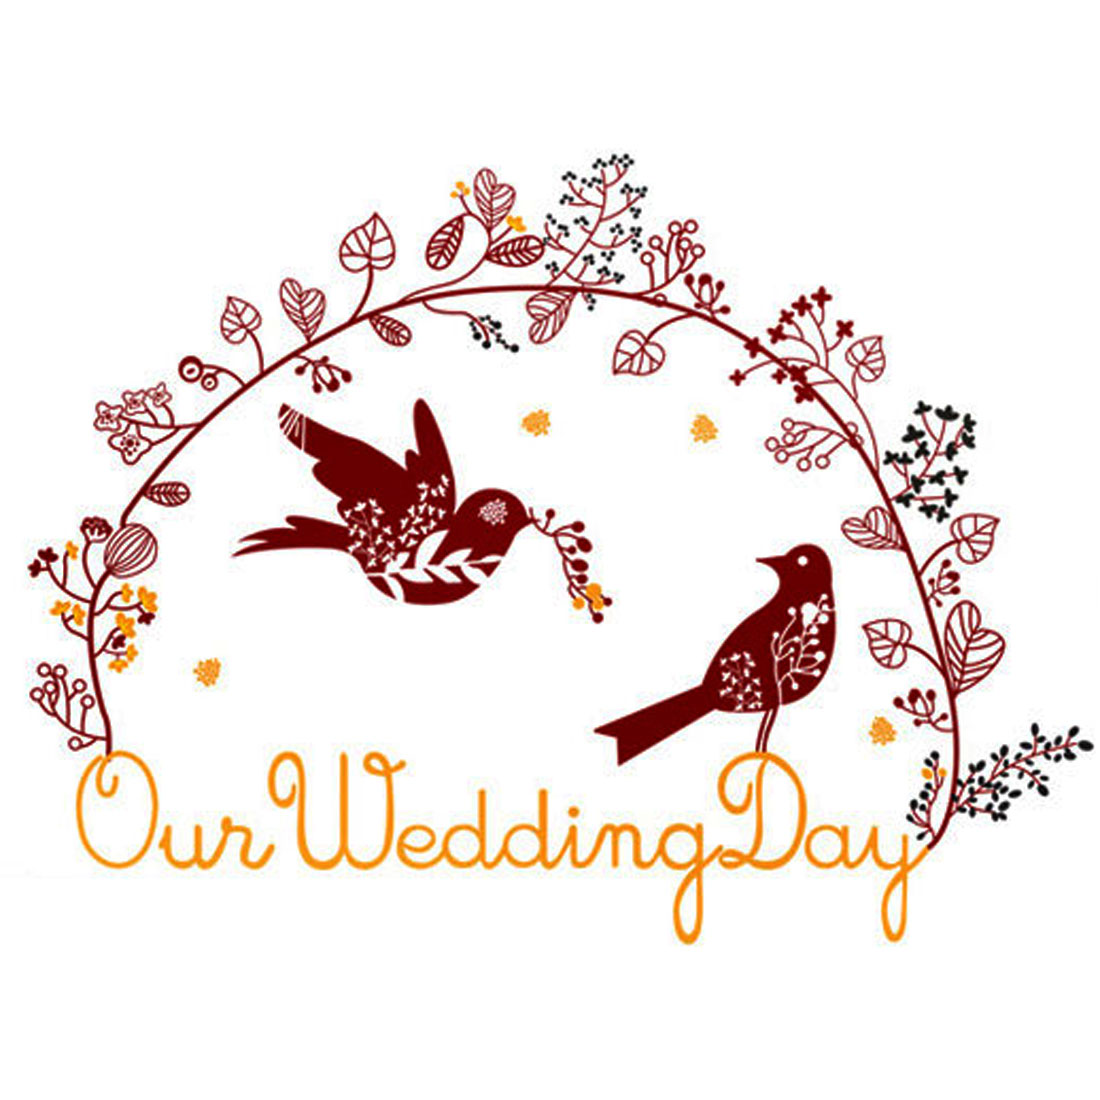 Wedding Room Magpies Couples Pattern Removable Wall Sticker Wallpaper Mural